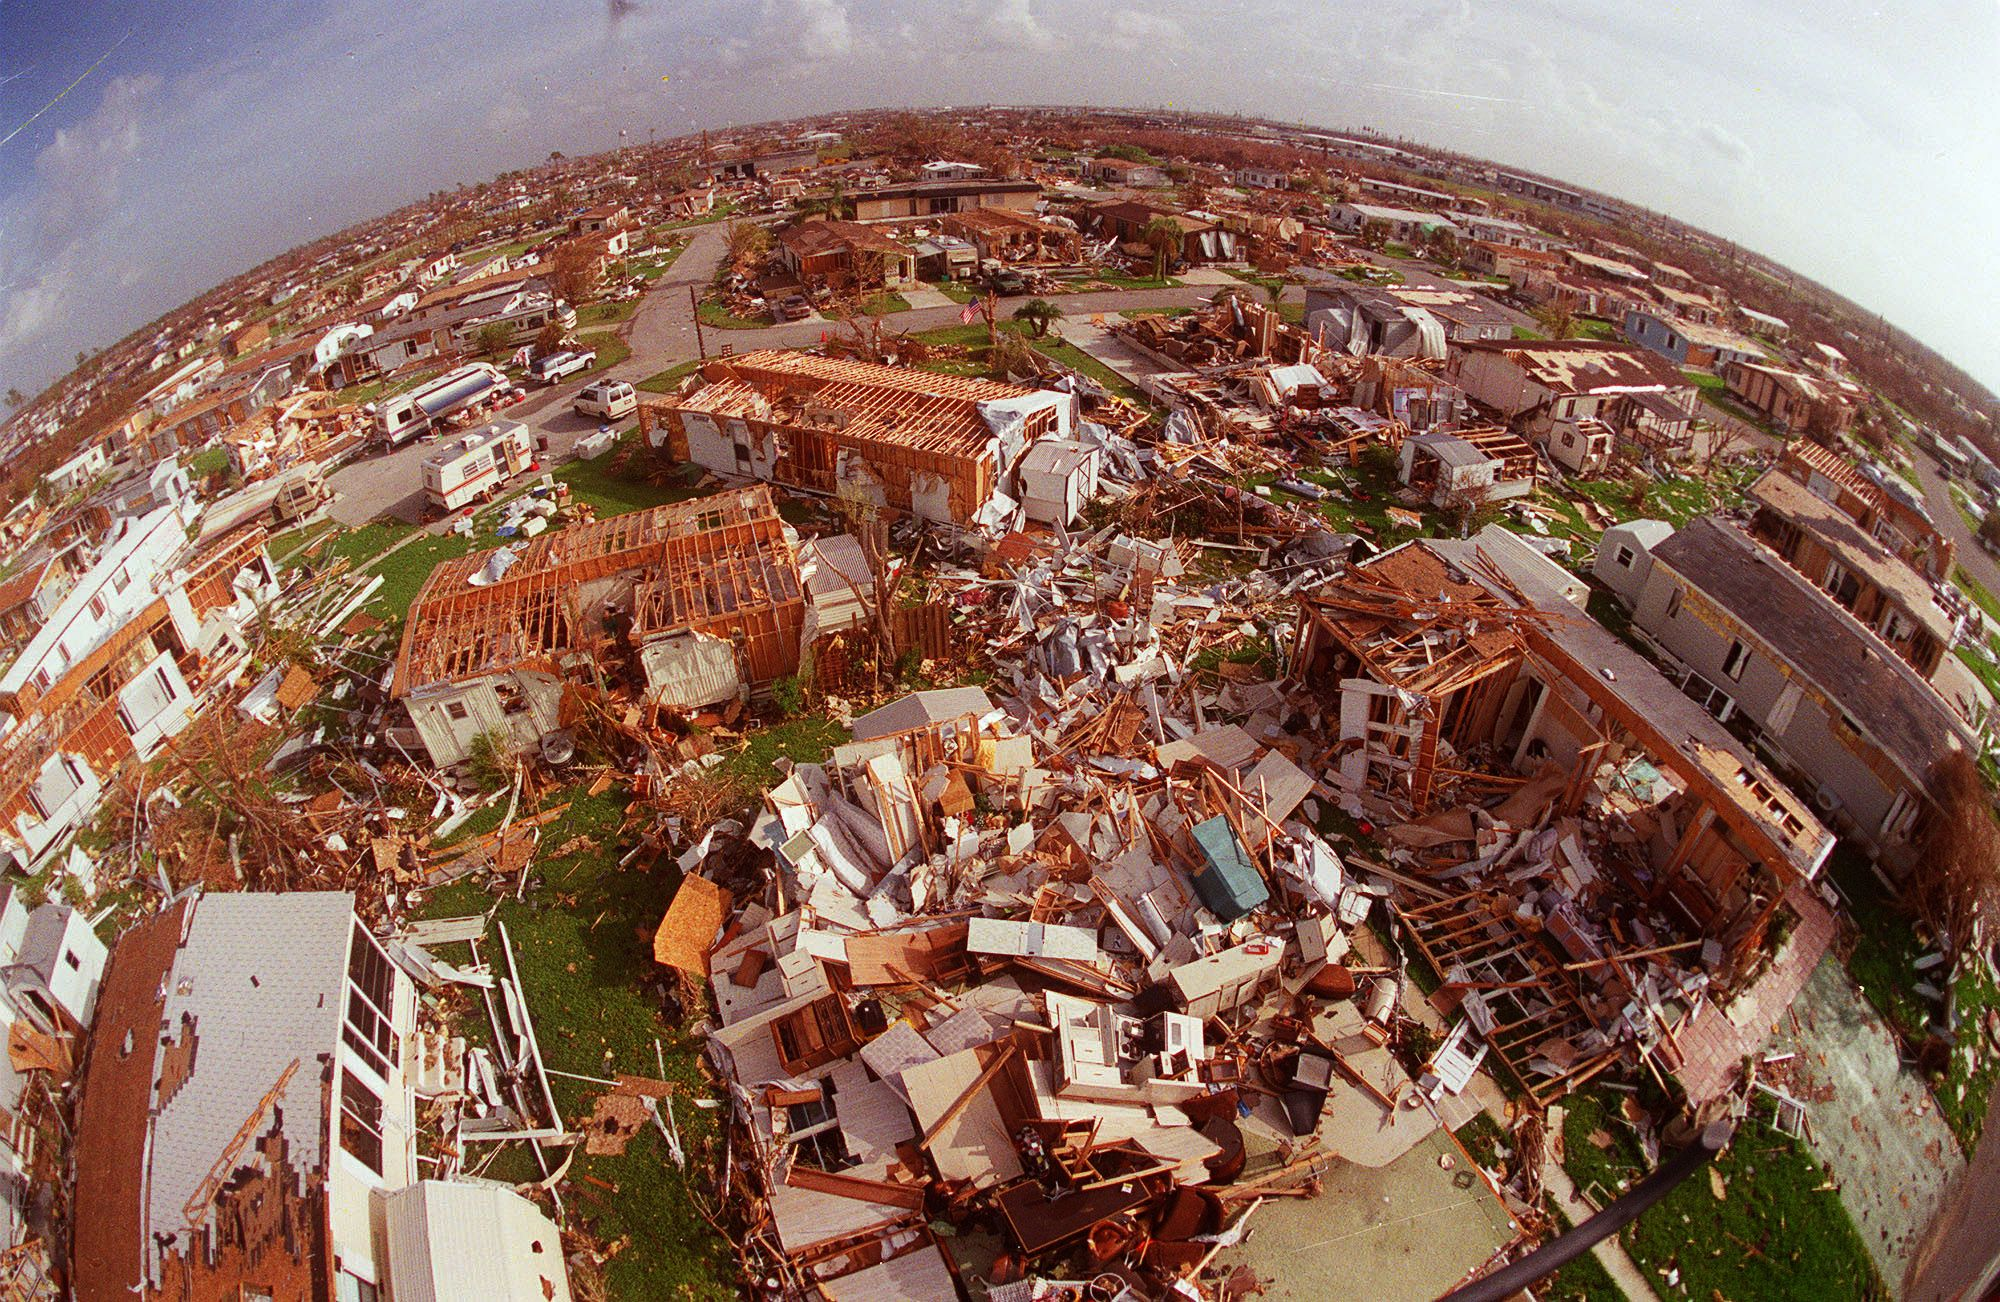 Publix Supermarket Newsletter From Hurricane Andrew Google Search Hurricane Andrew Photographic Print Hurricane